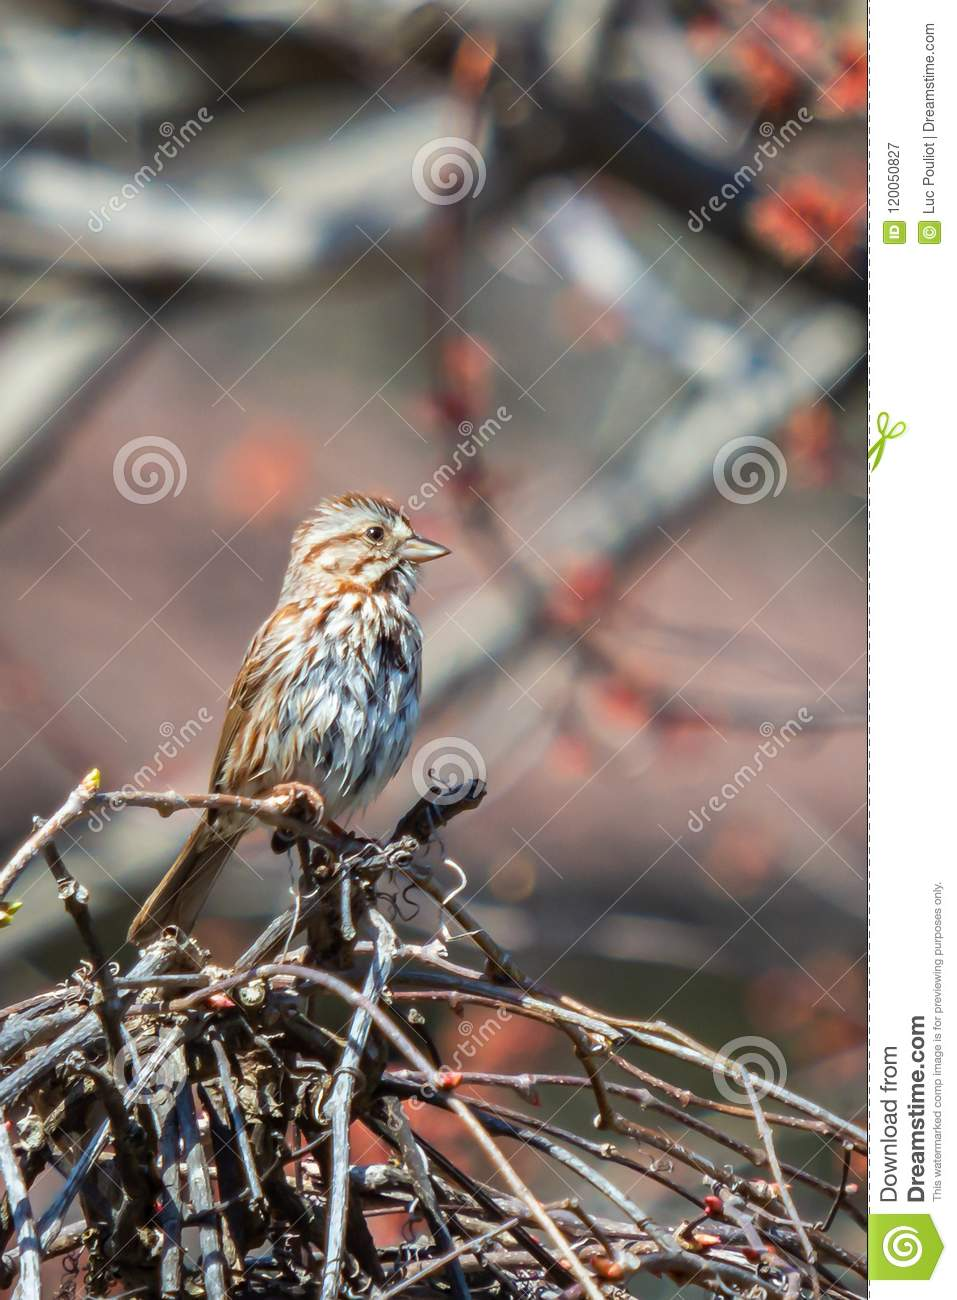 Song sparrow perched on a grapevine